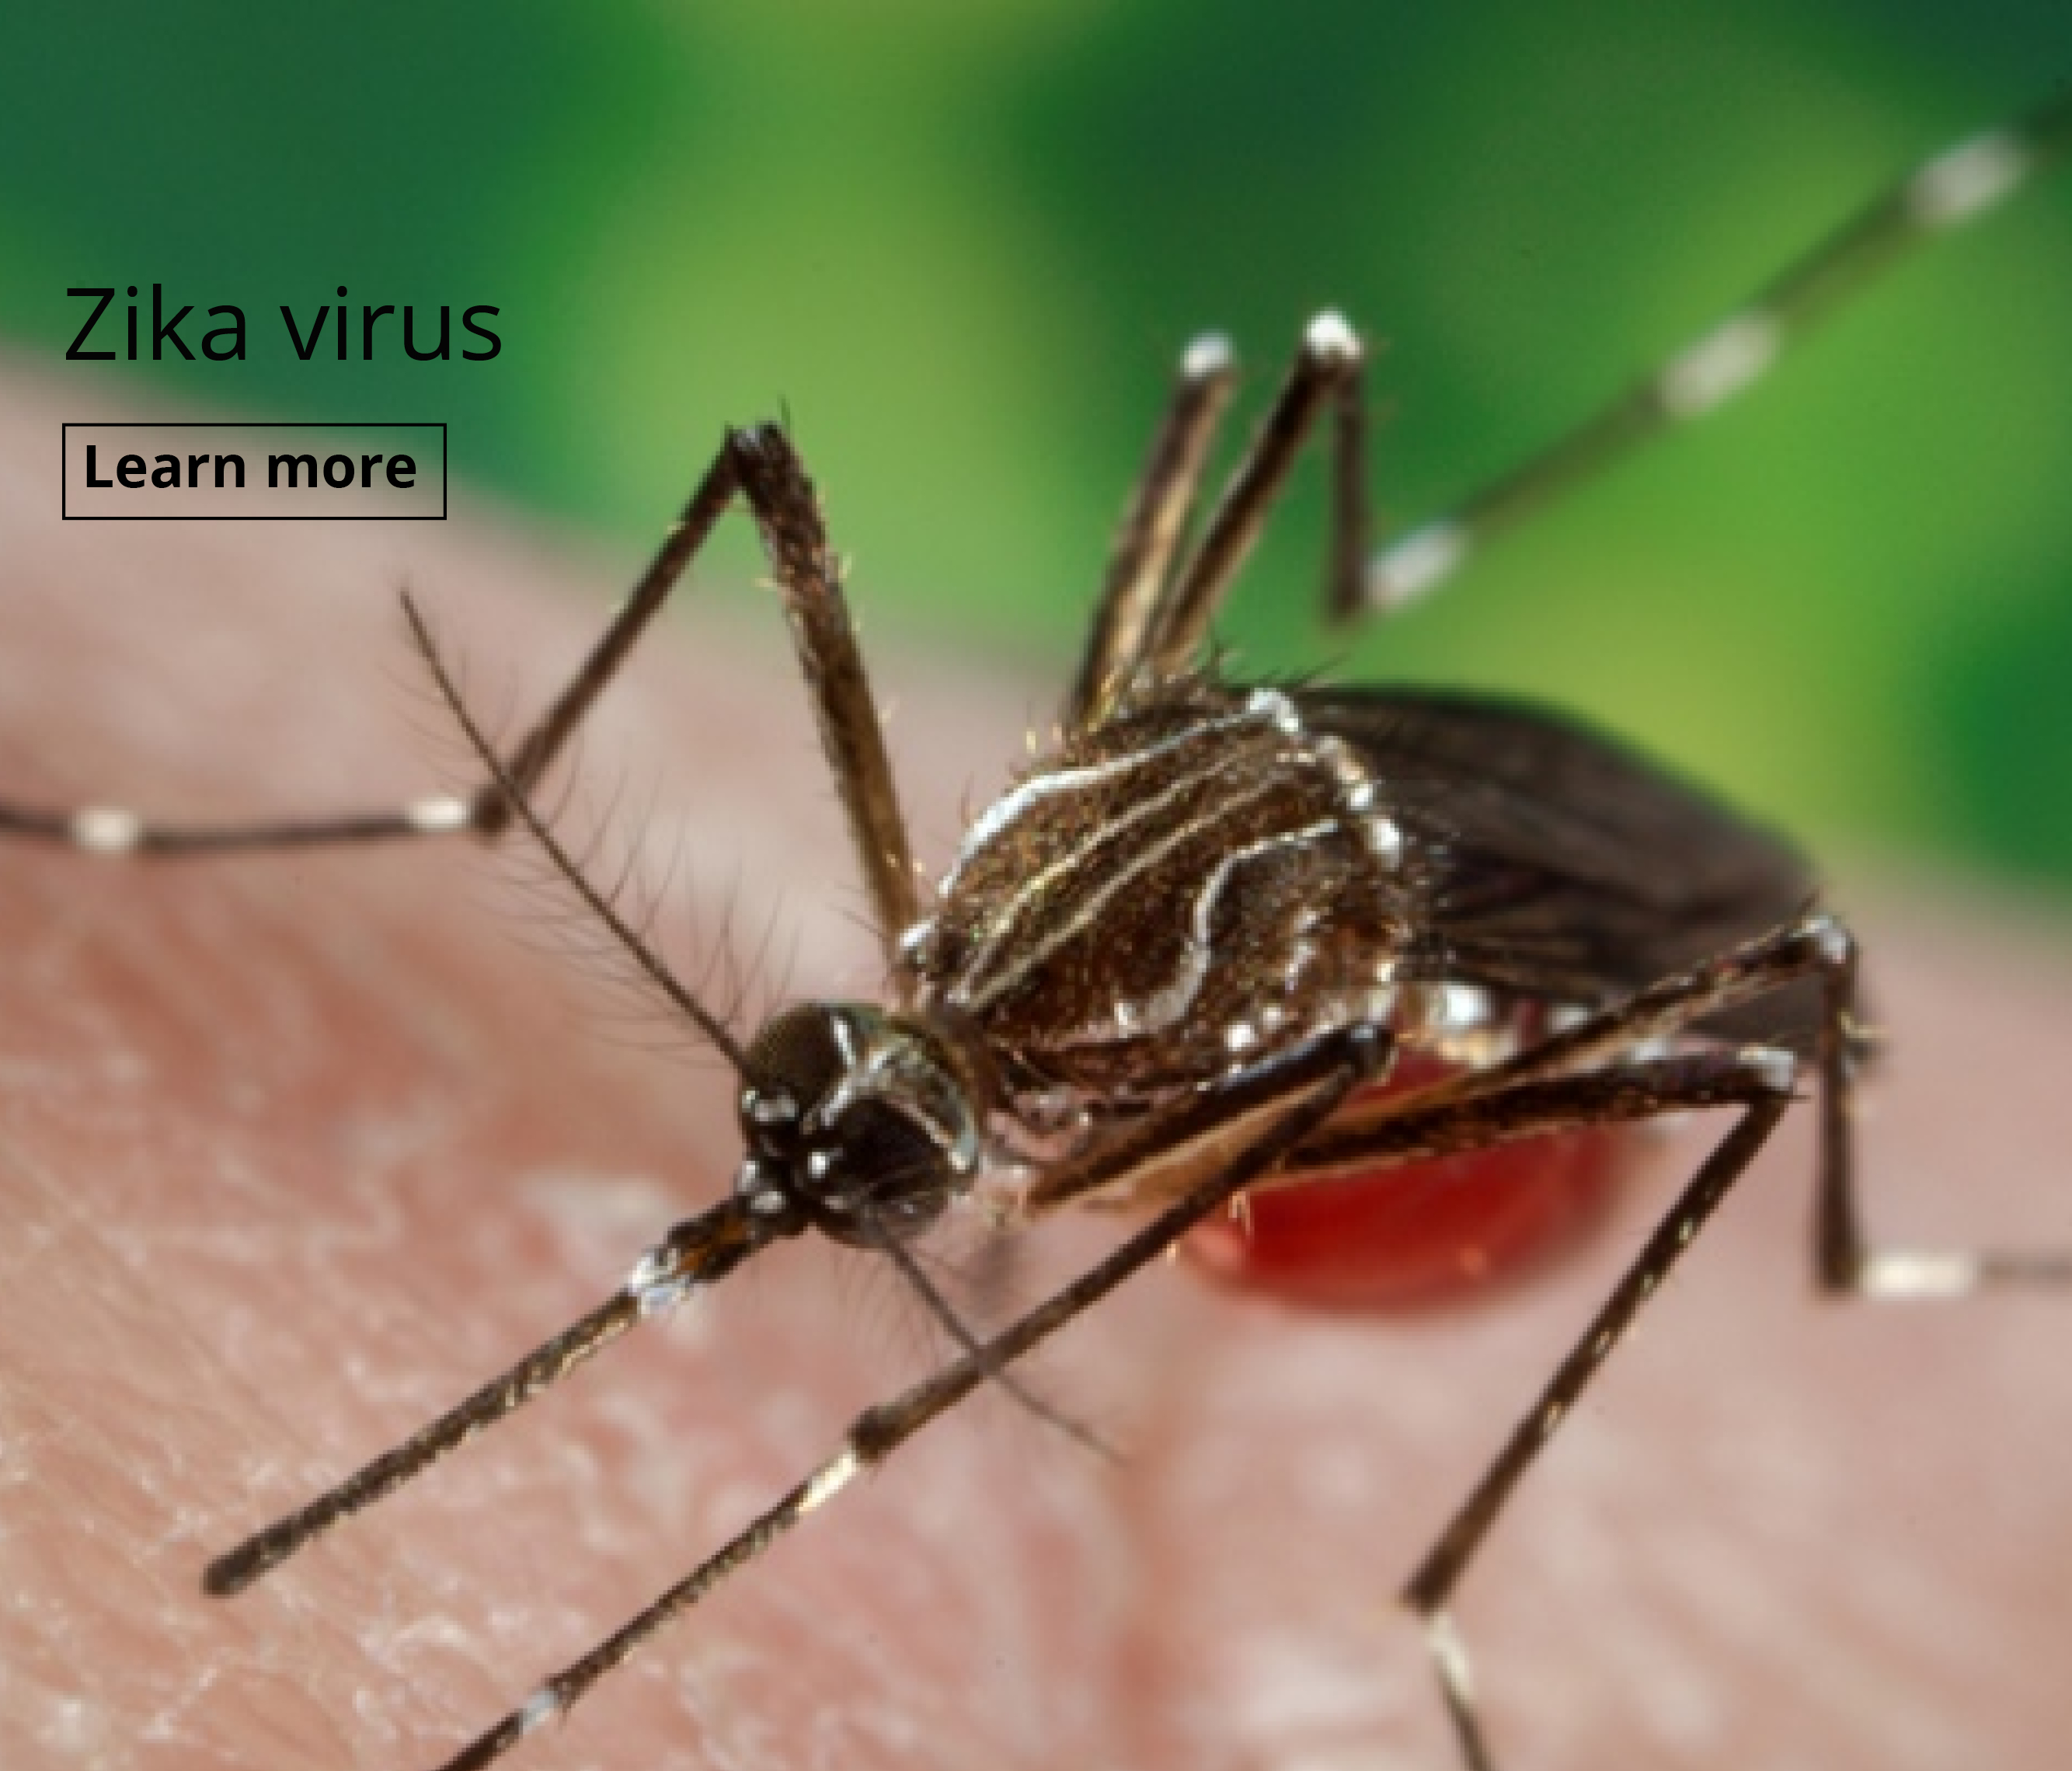 Zika virus - travel health alert